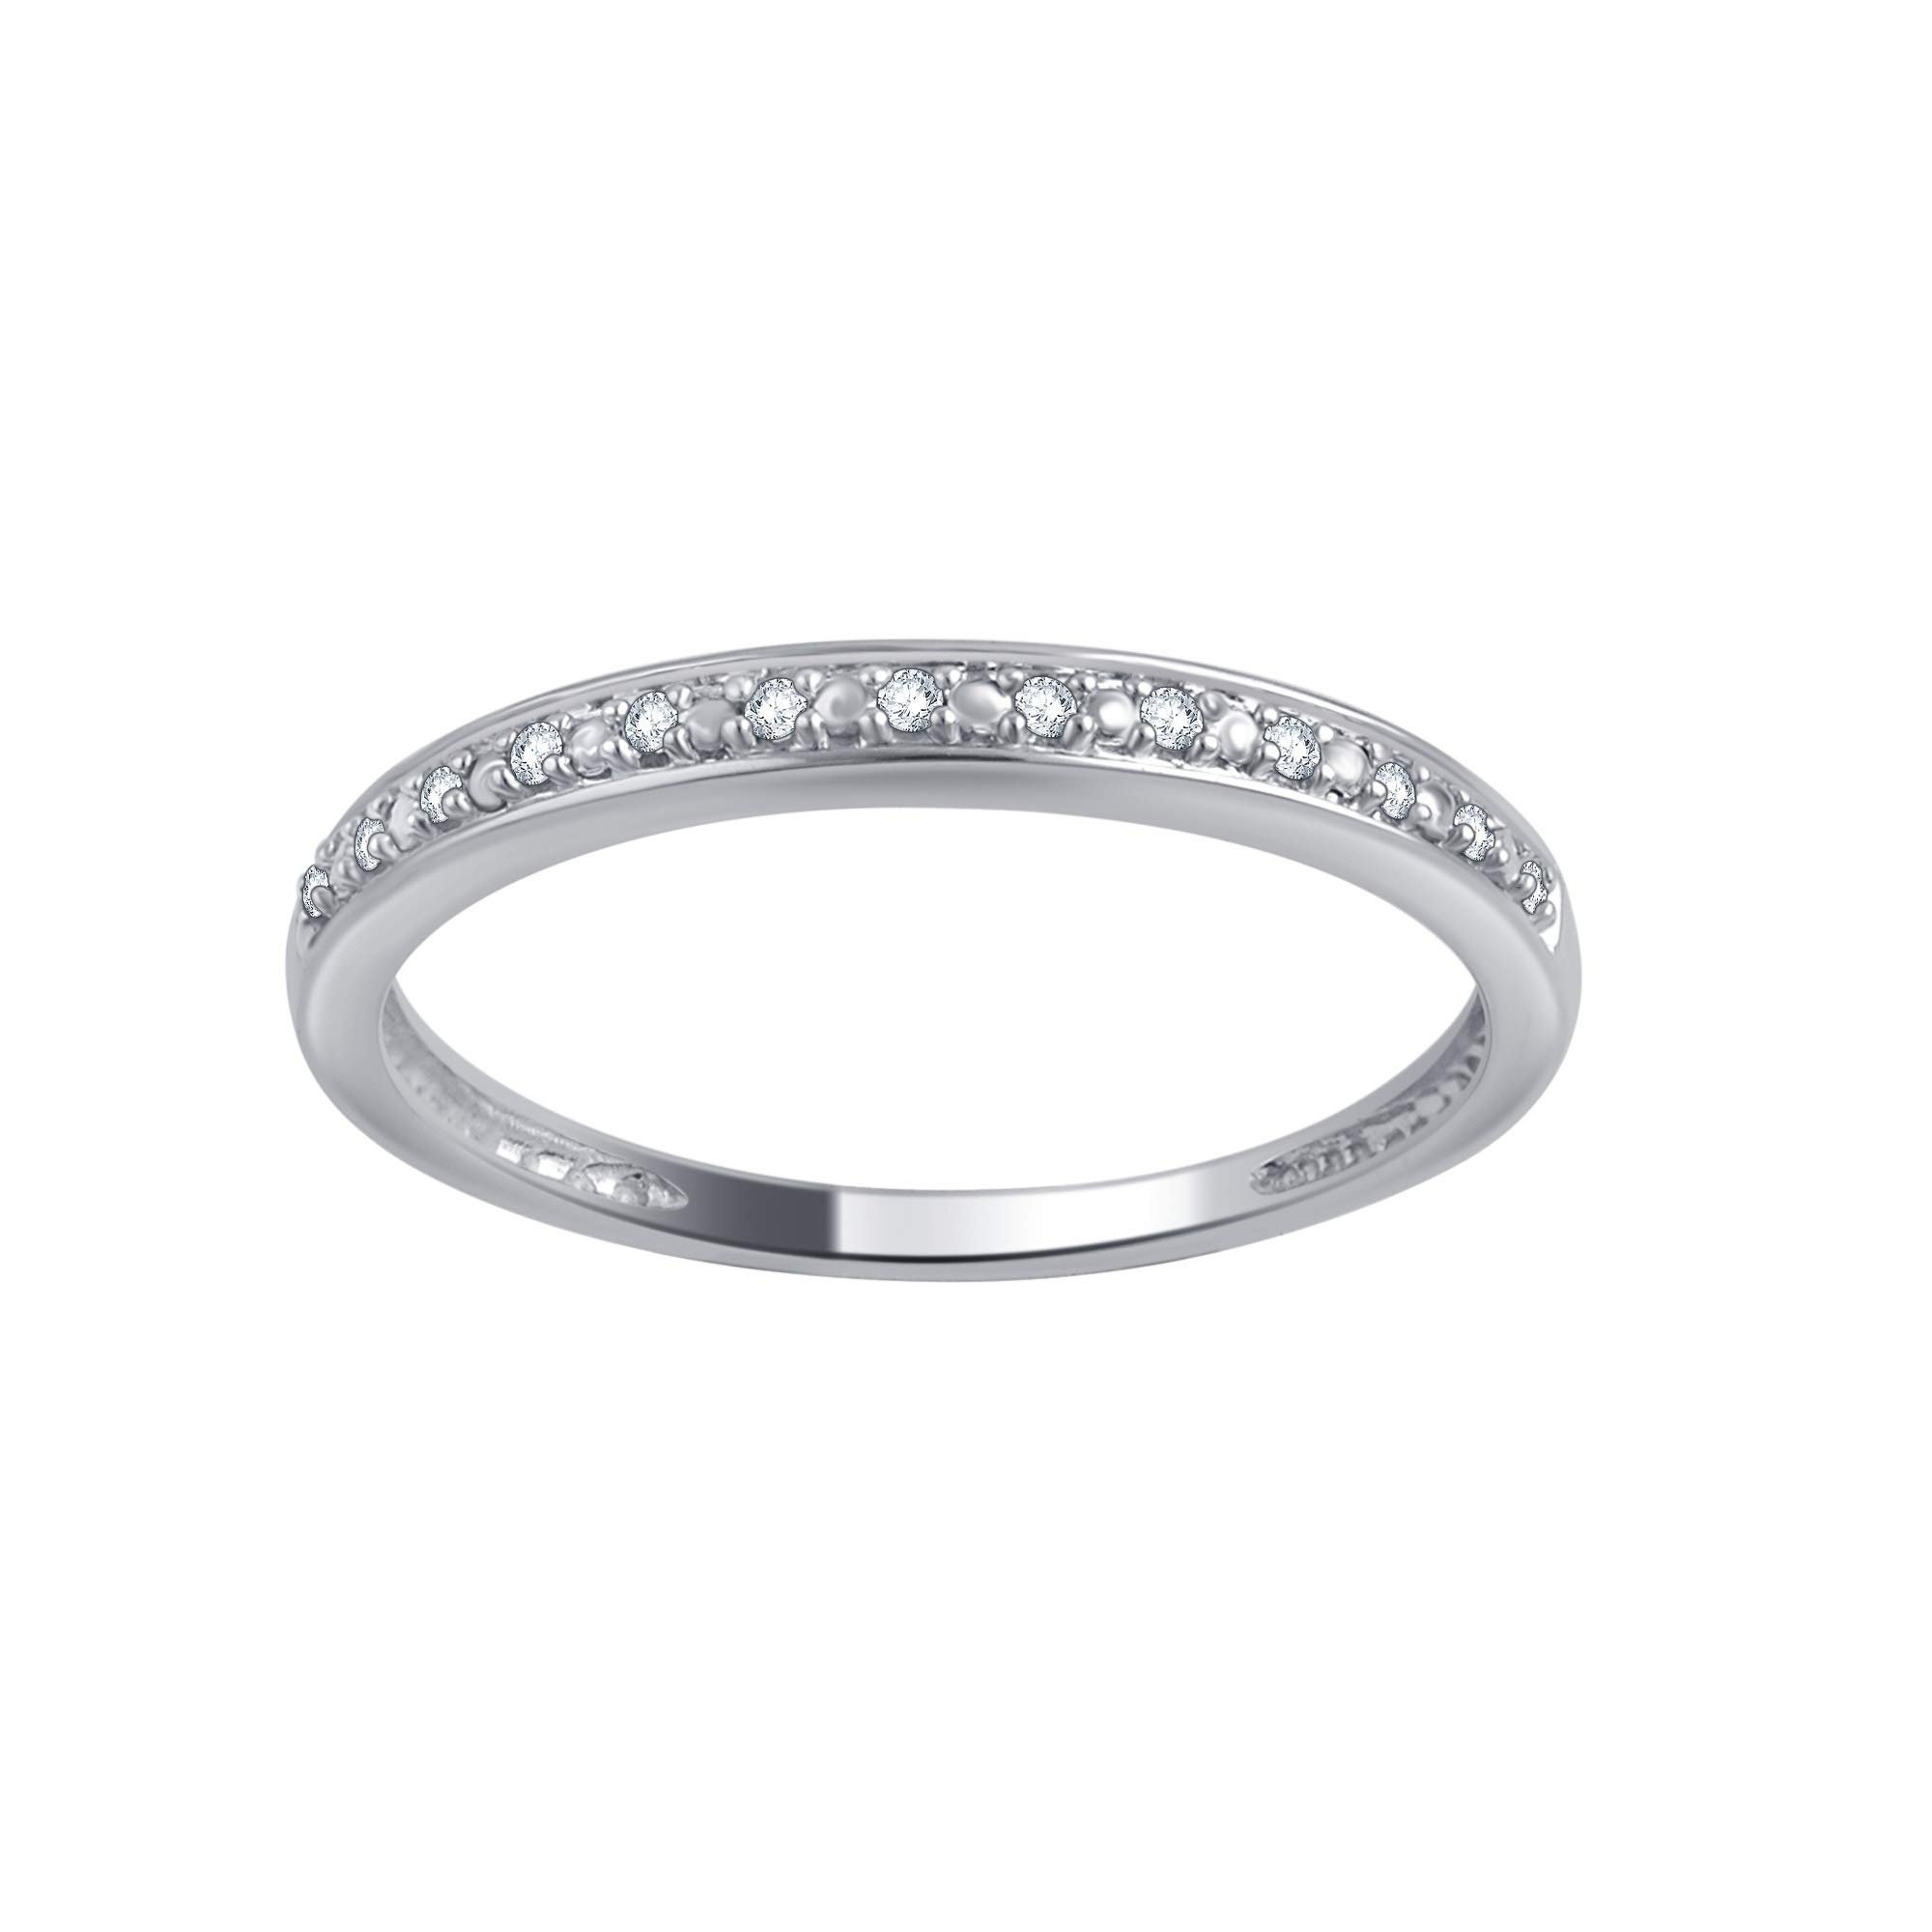 0.05 Carat Round Diamond Wedding Band & Stackable Set in 10K Gold by Brilliant Diamond